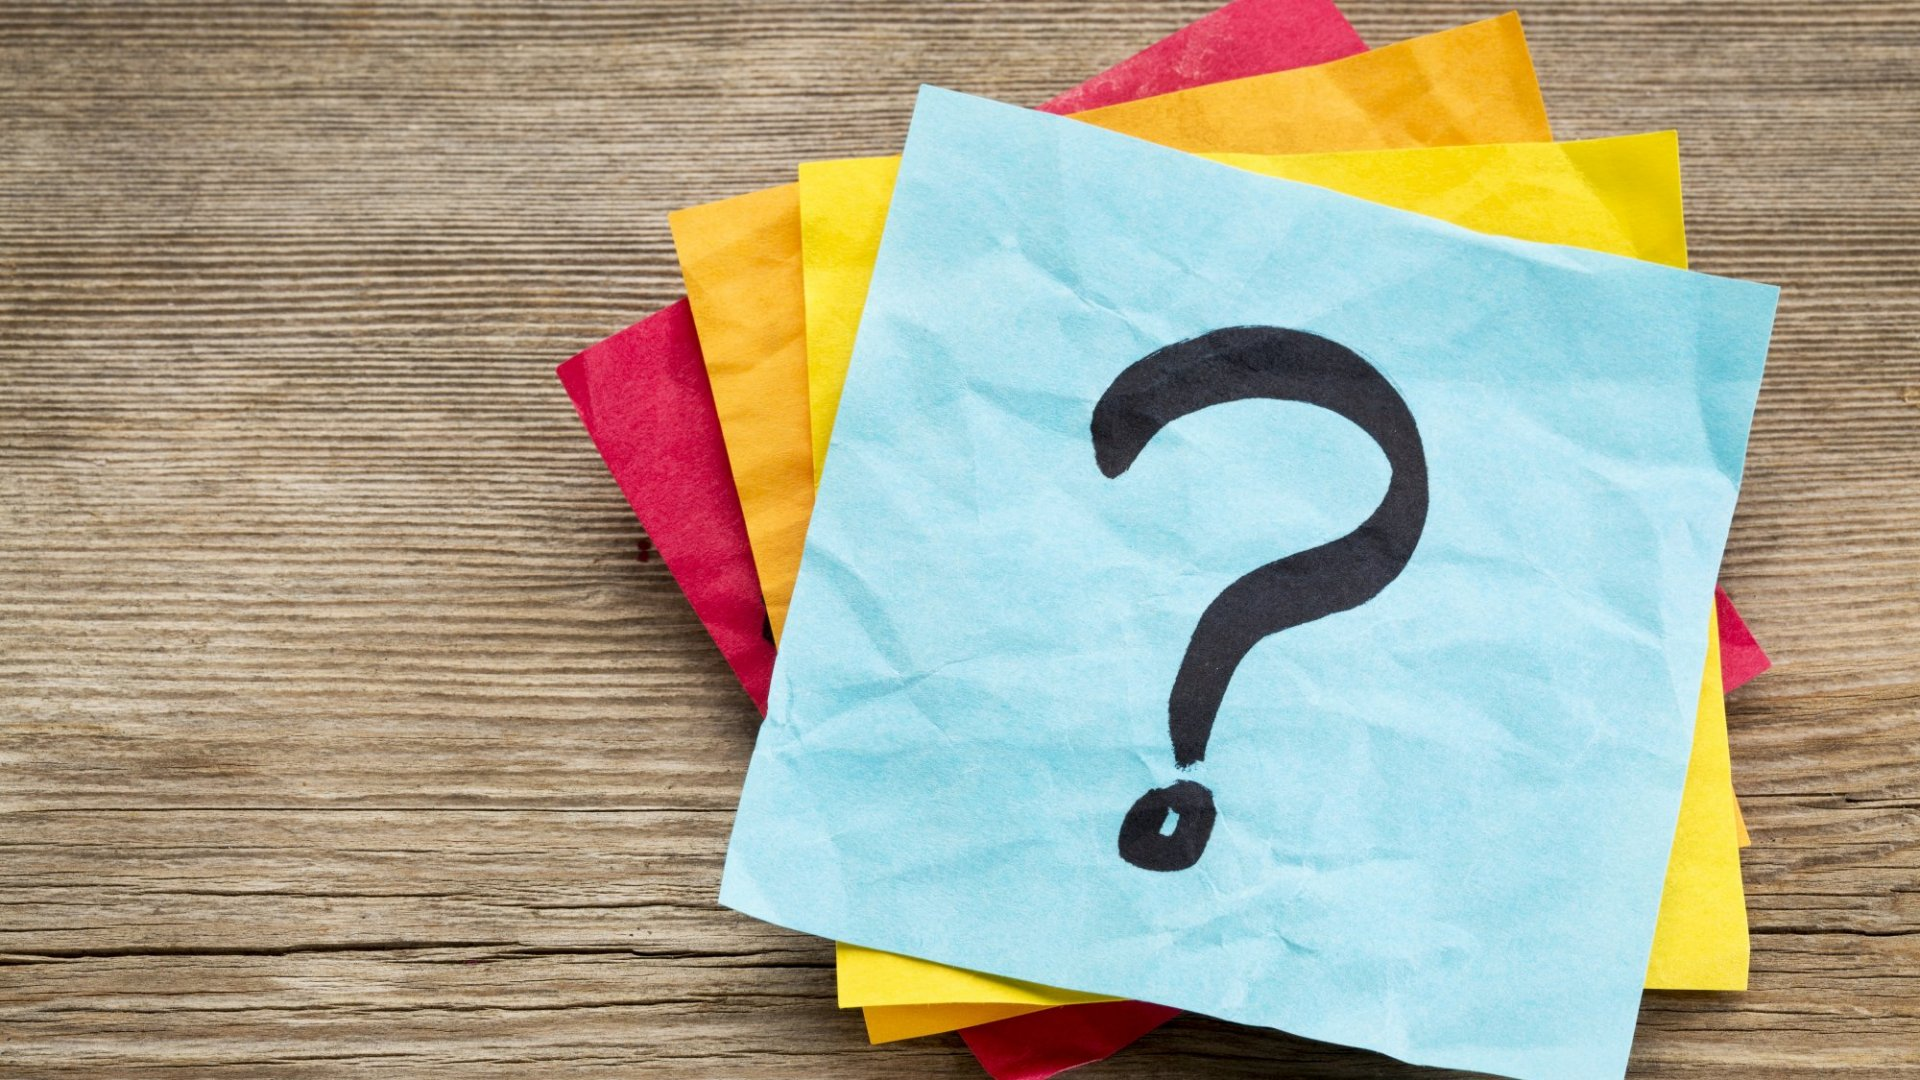 If You Want the Job, Don't Ask These Questions